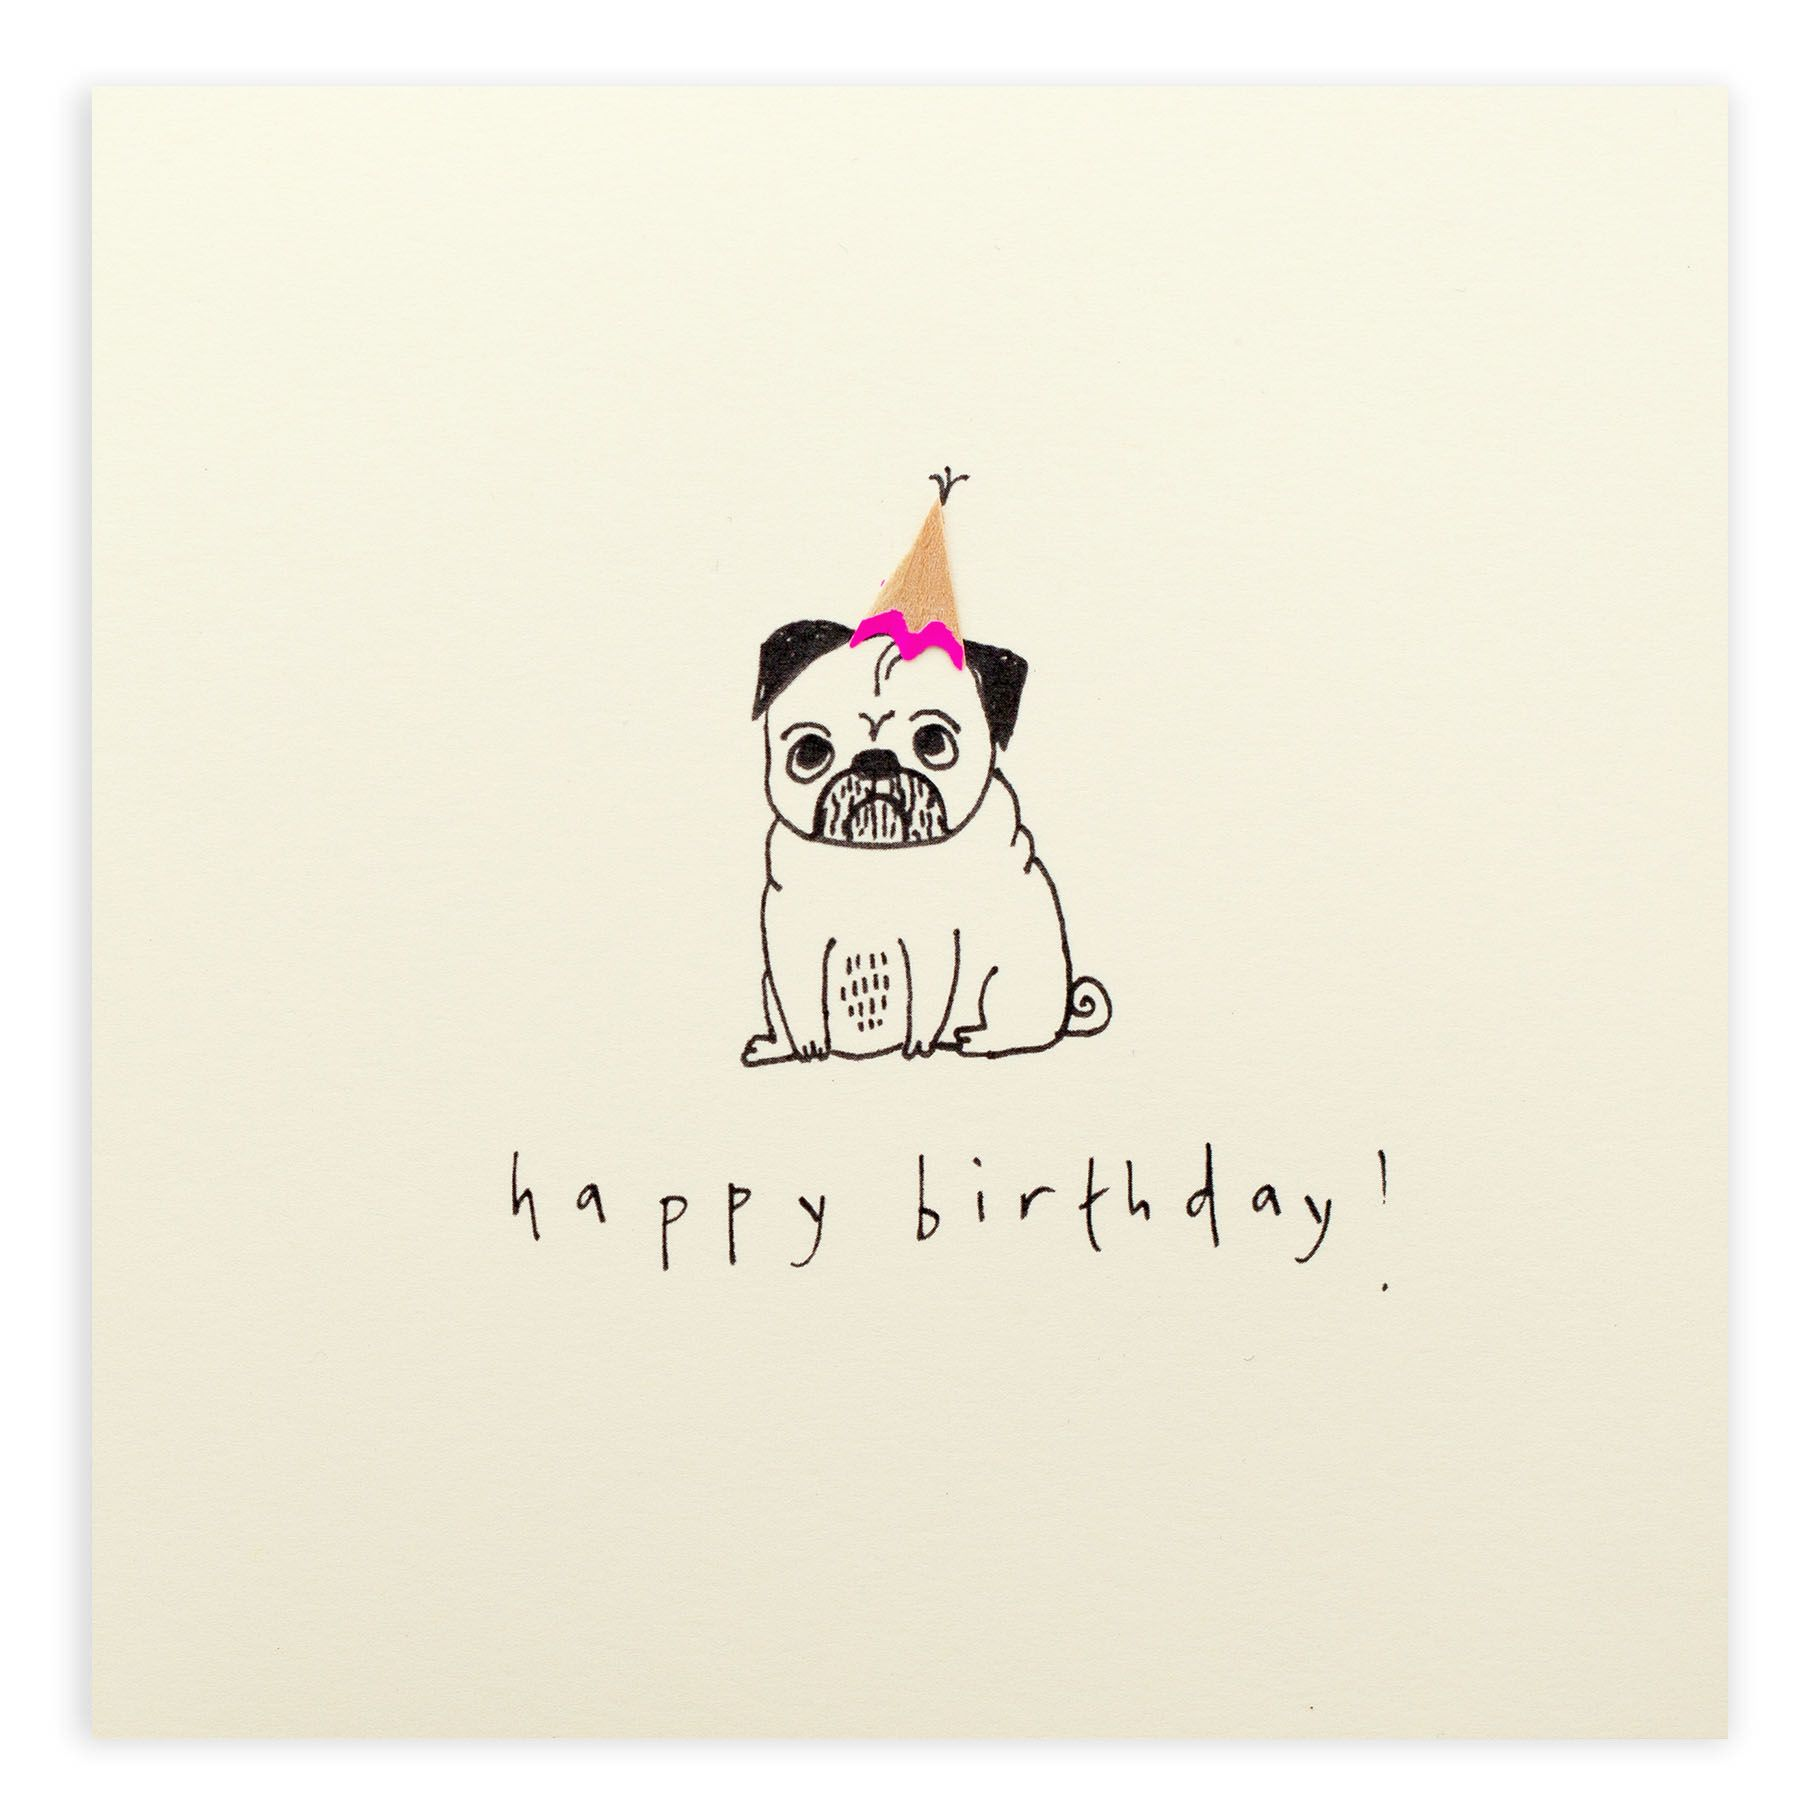 Nothing says Happy Birthday like a lovely pug